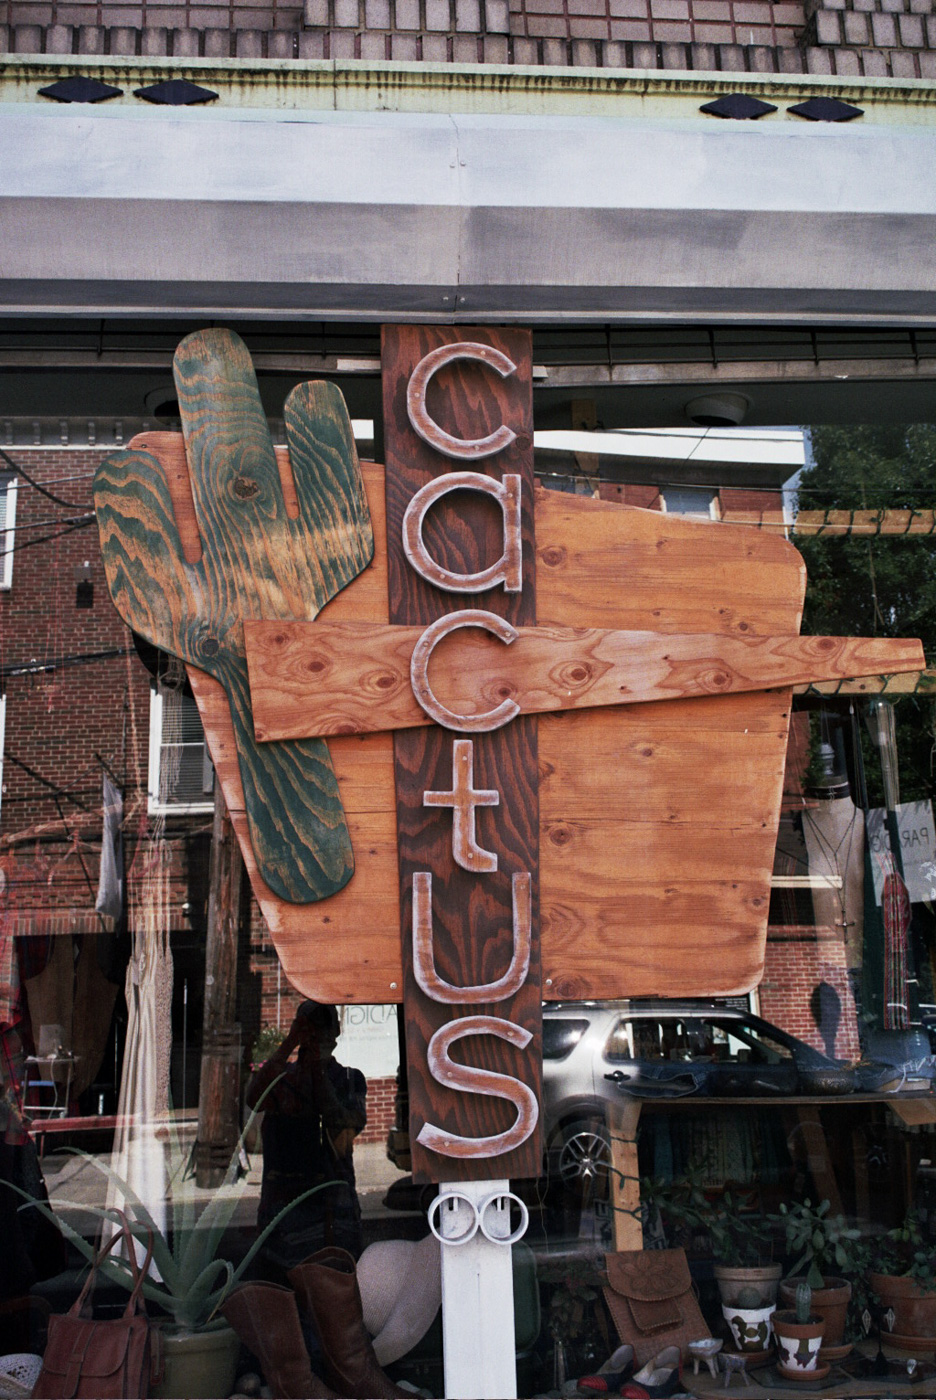 The Cactus Collective